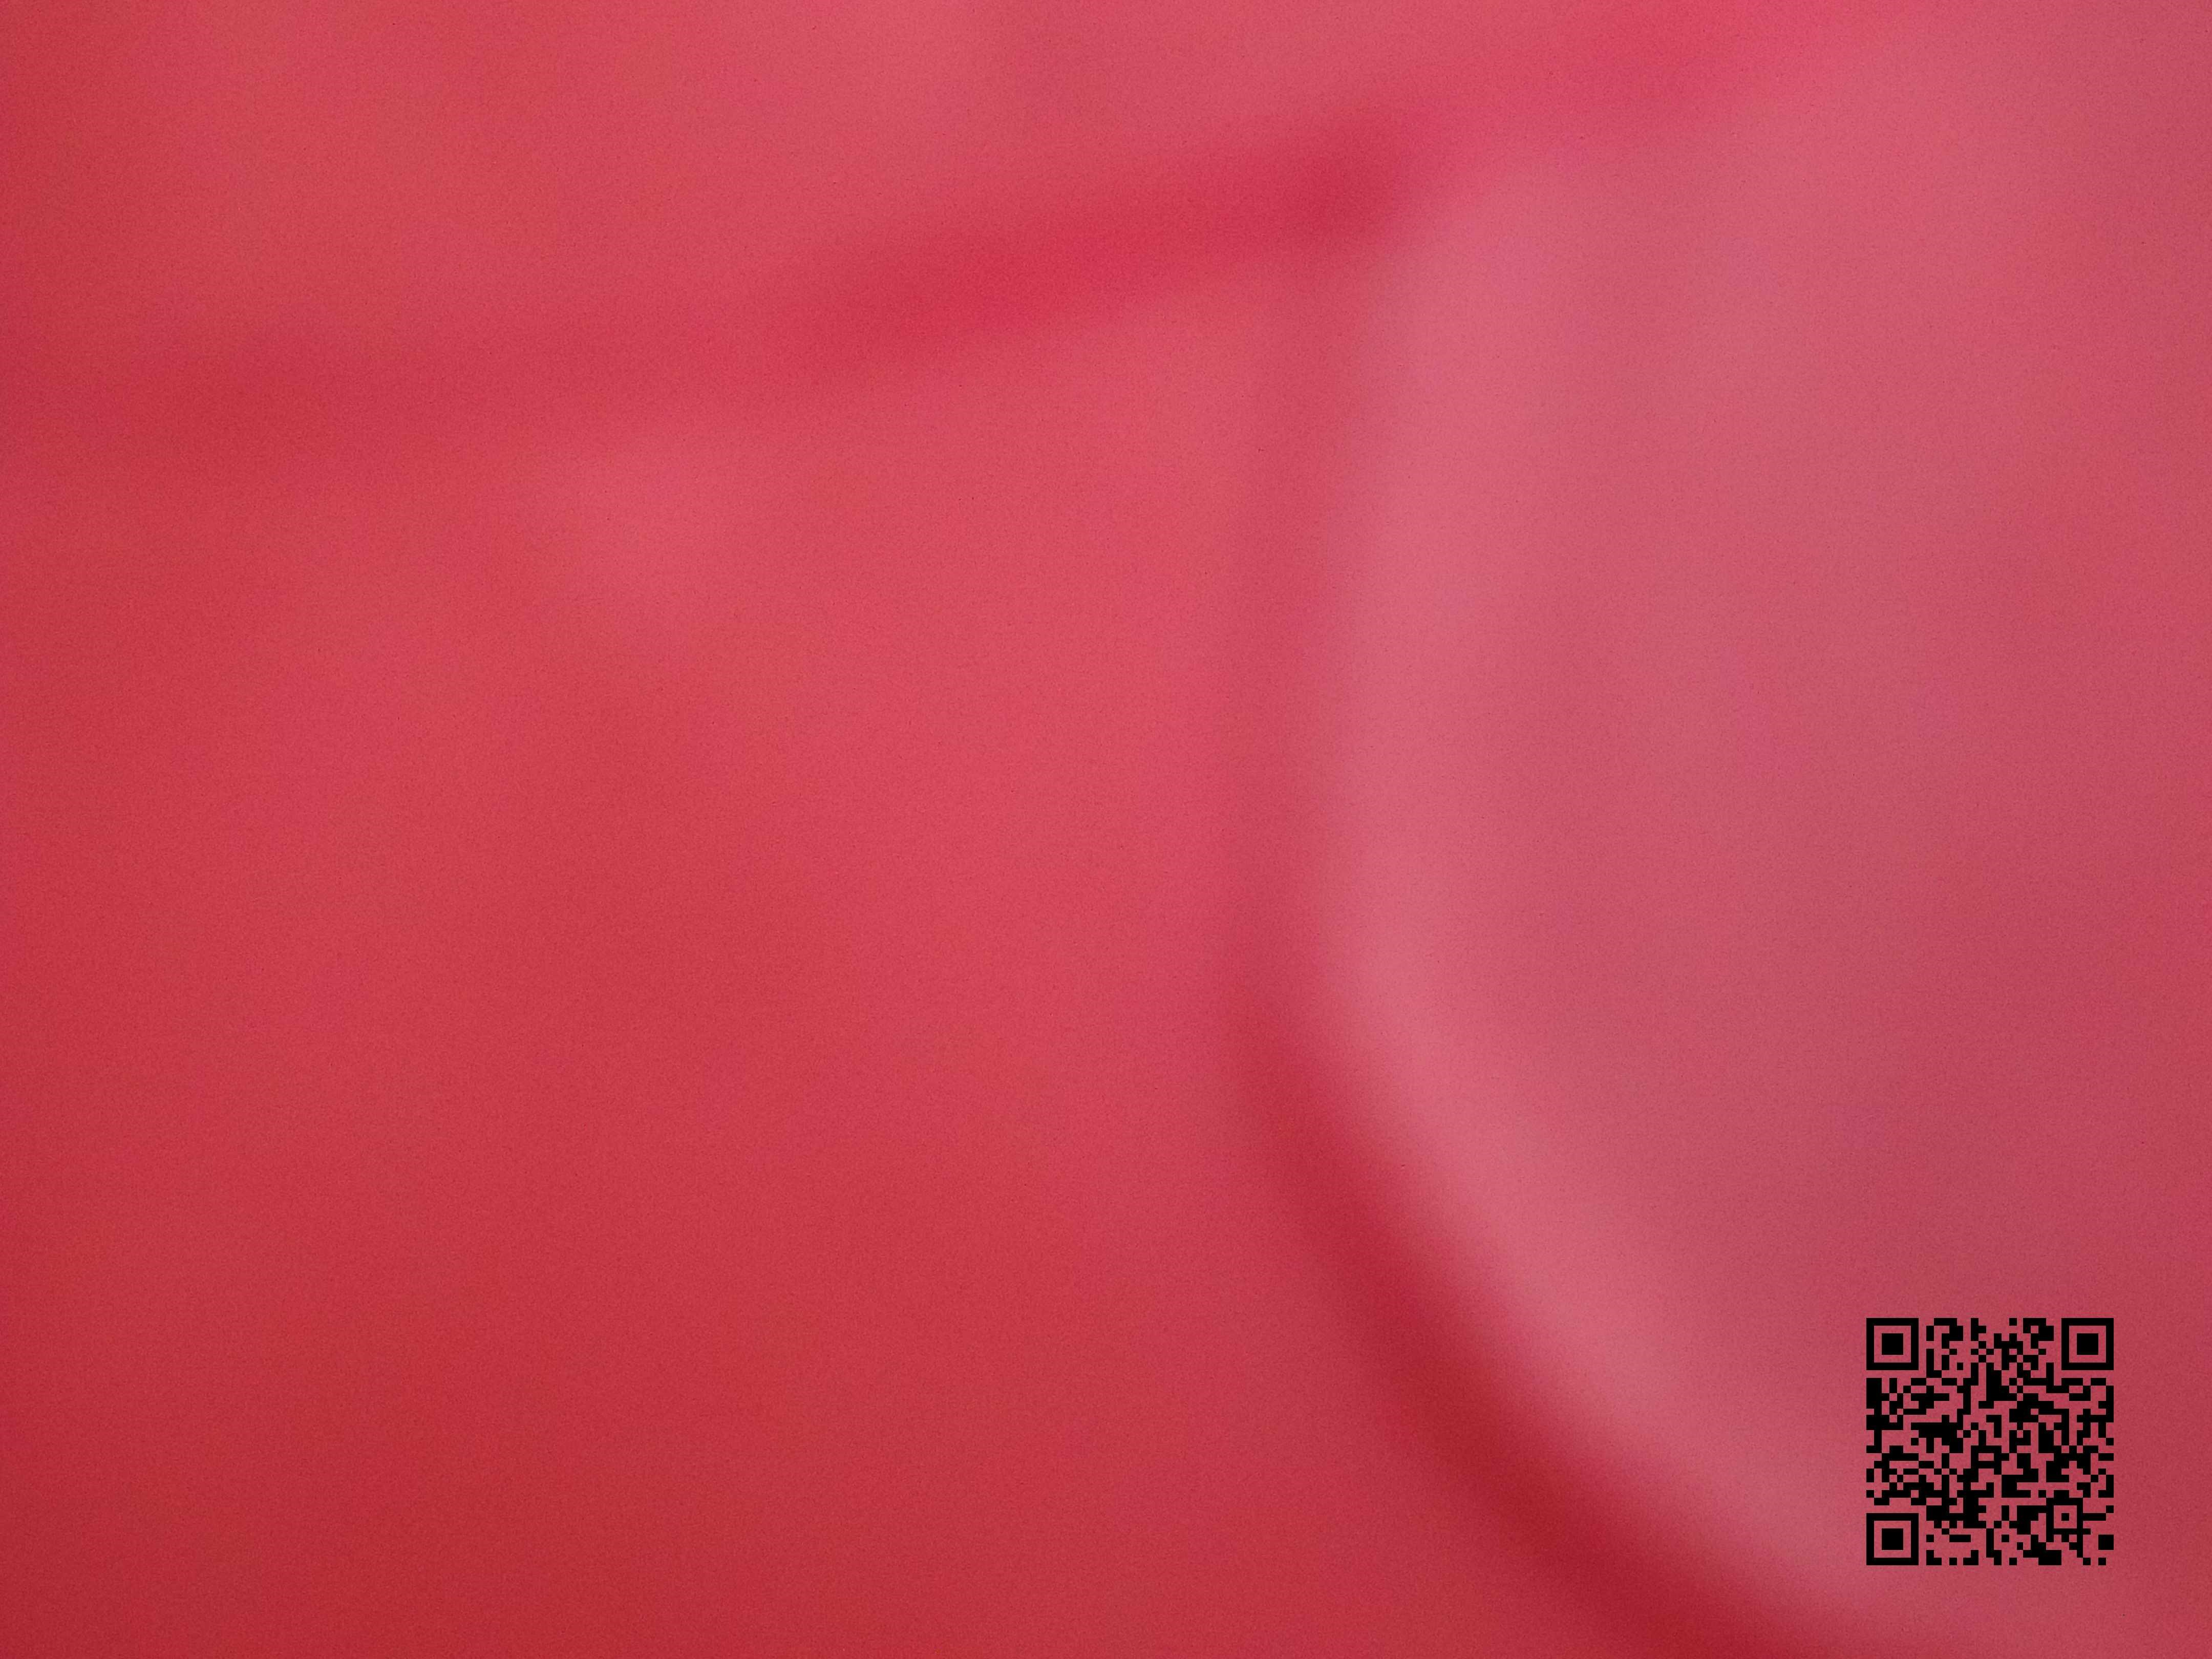 image of red with QR code